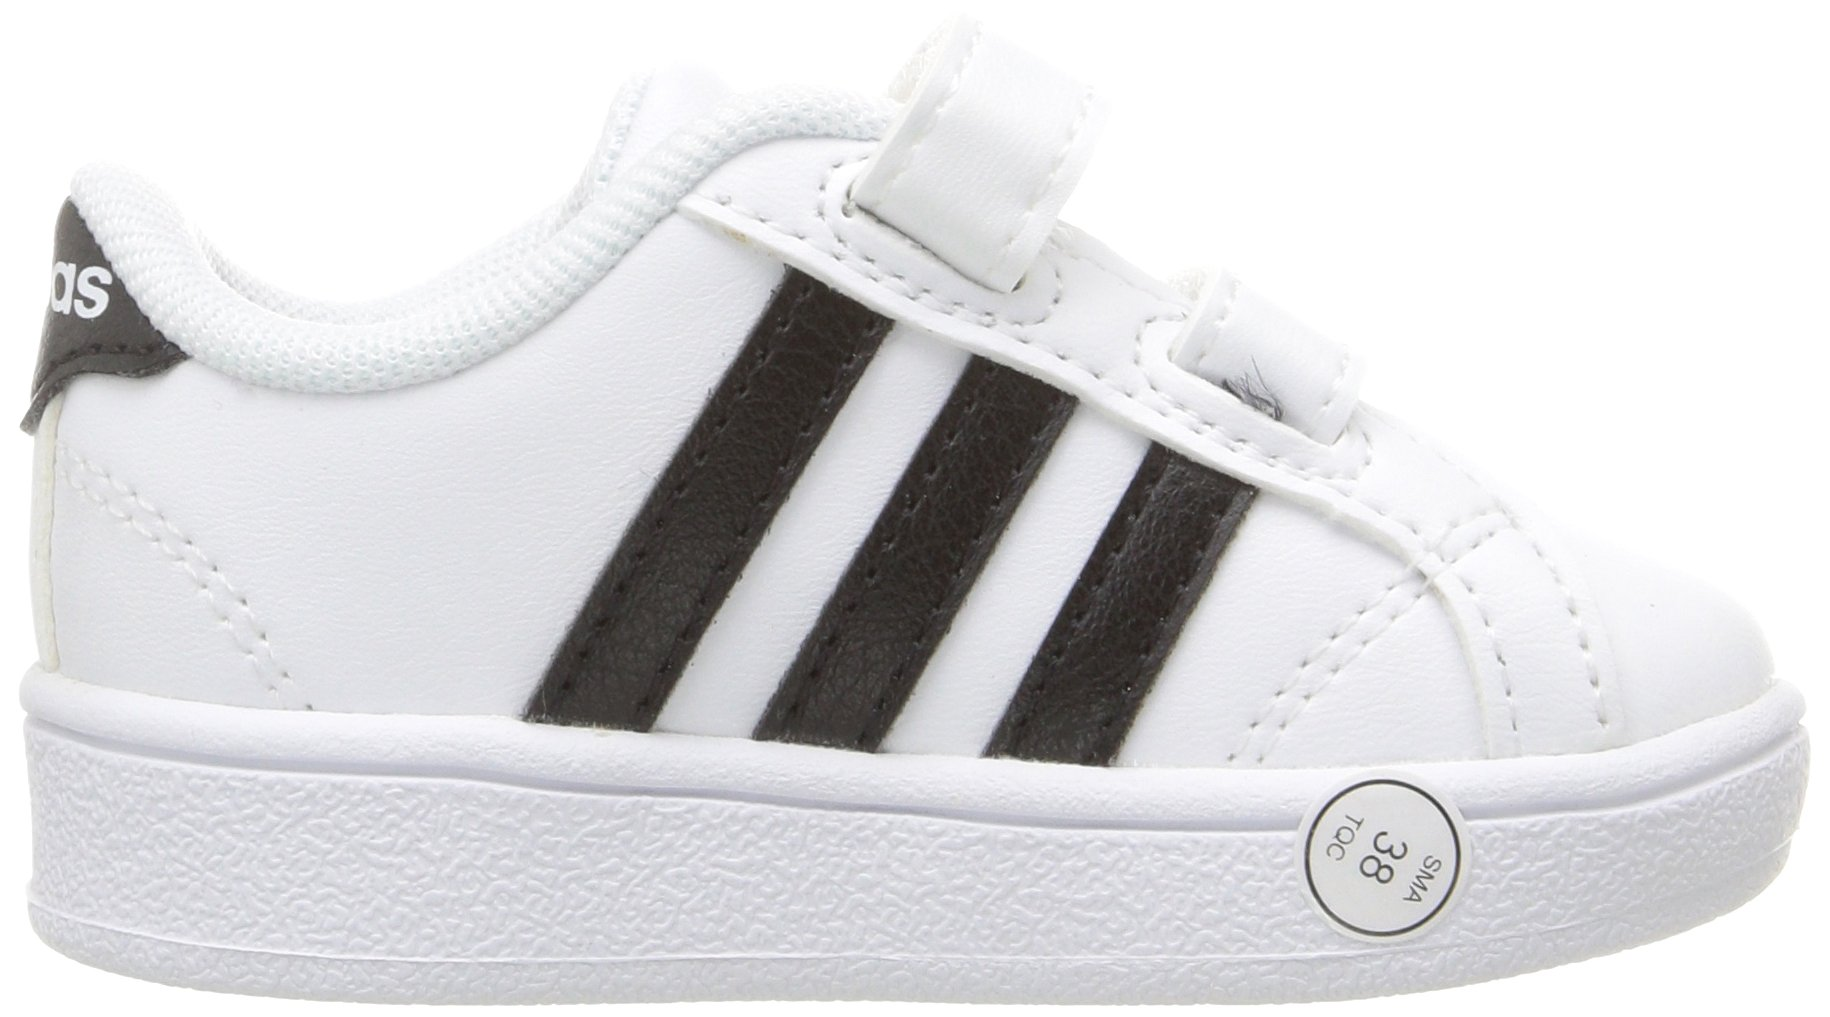 adidas Performance Baby Baseline Sneaker, White/Black/White, 6.5K M US Toddler by adidas (Image #9)